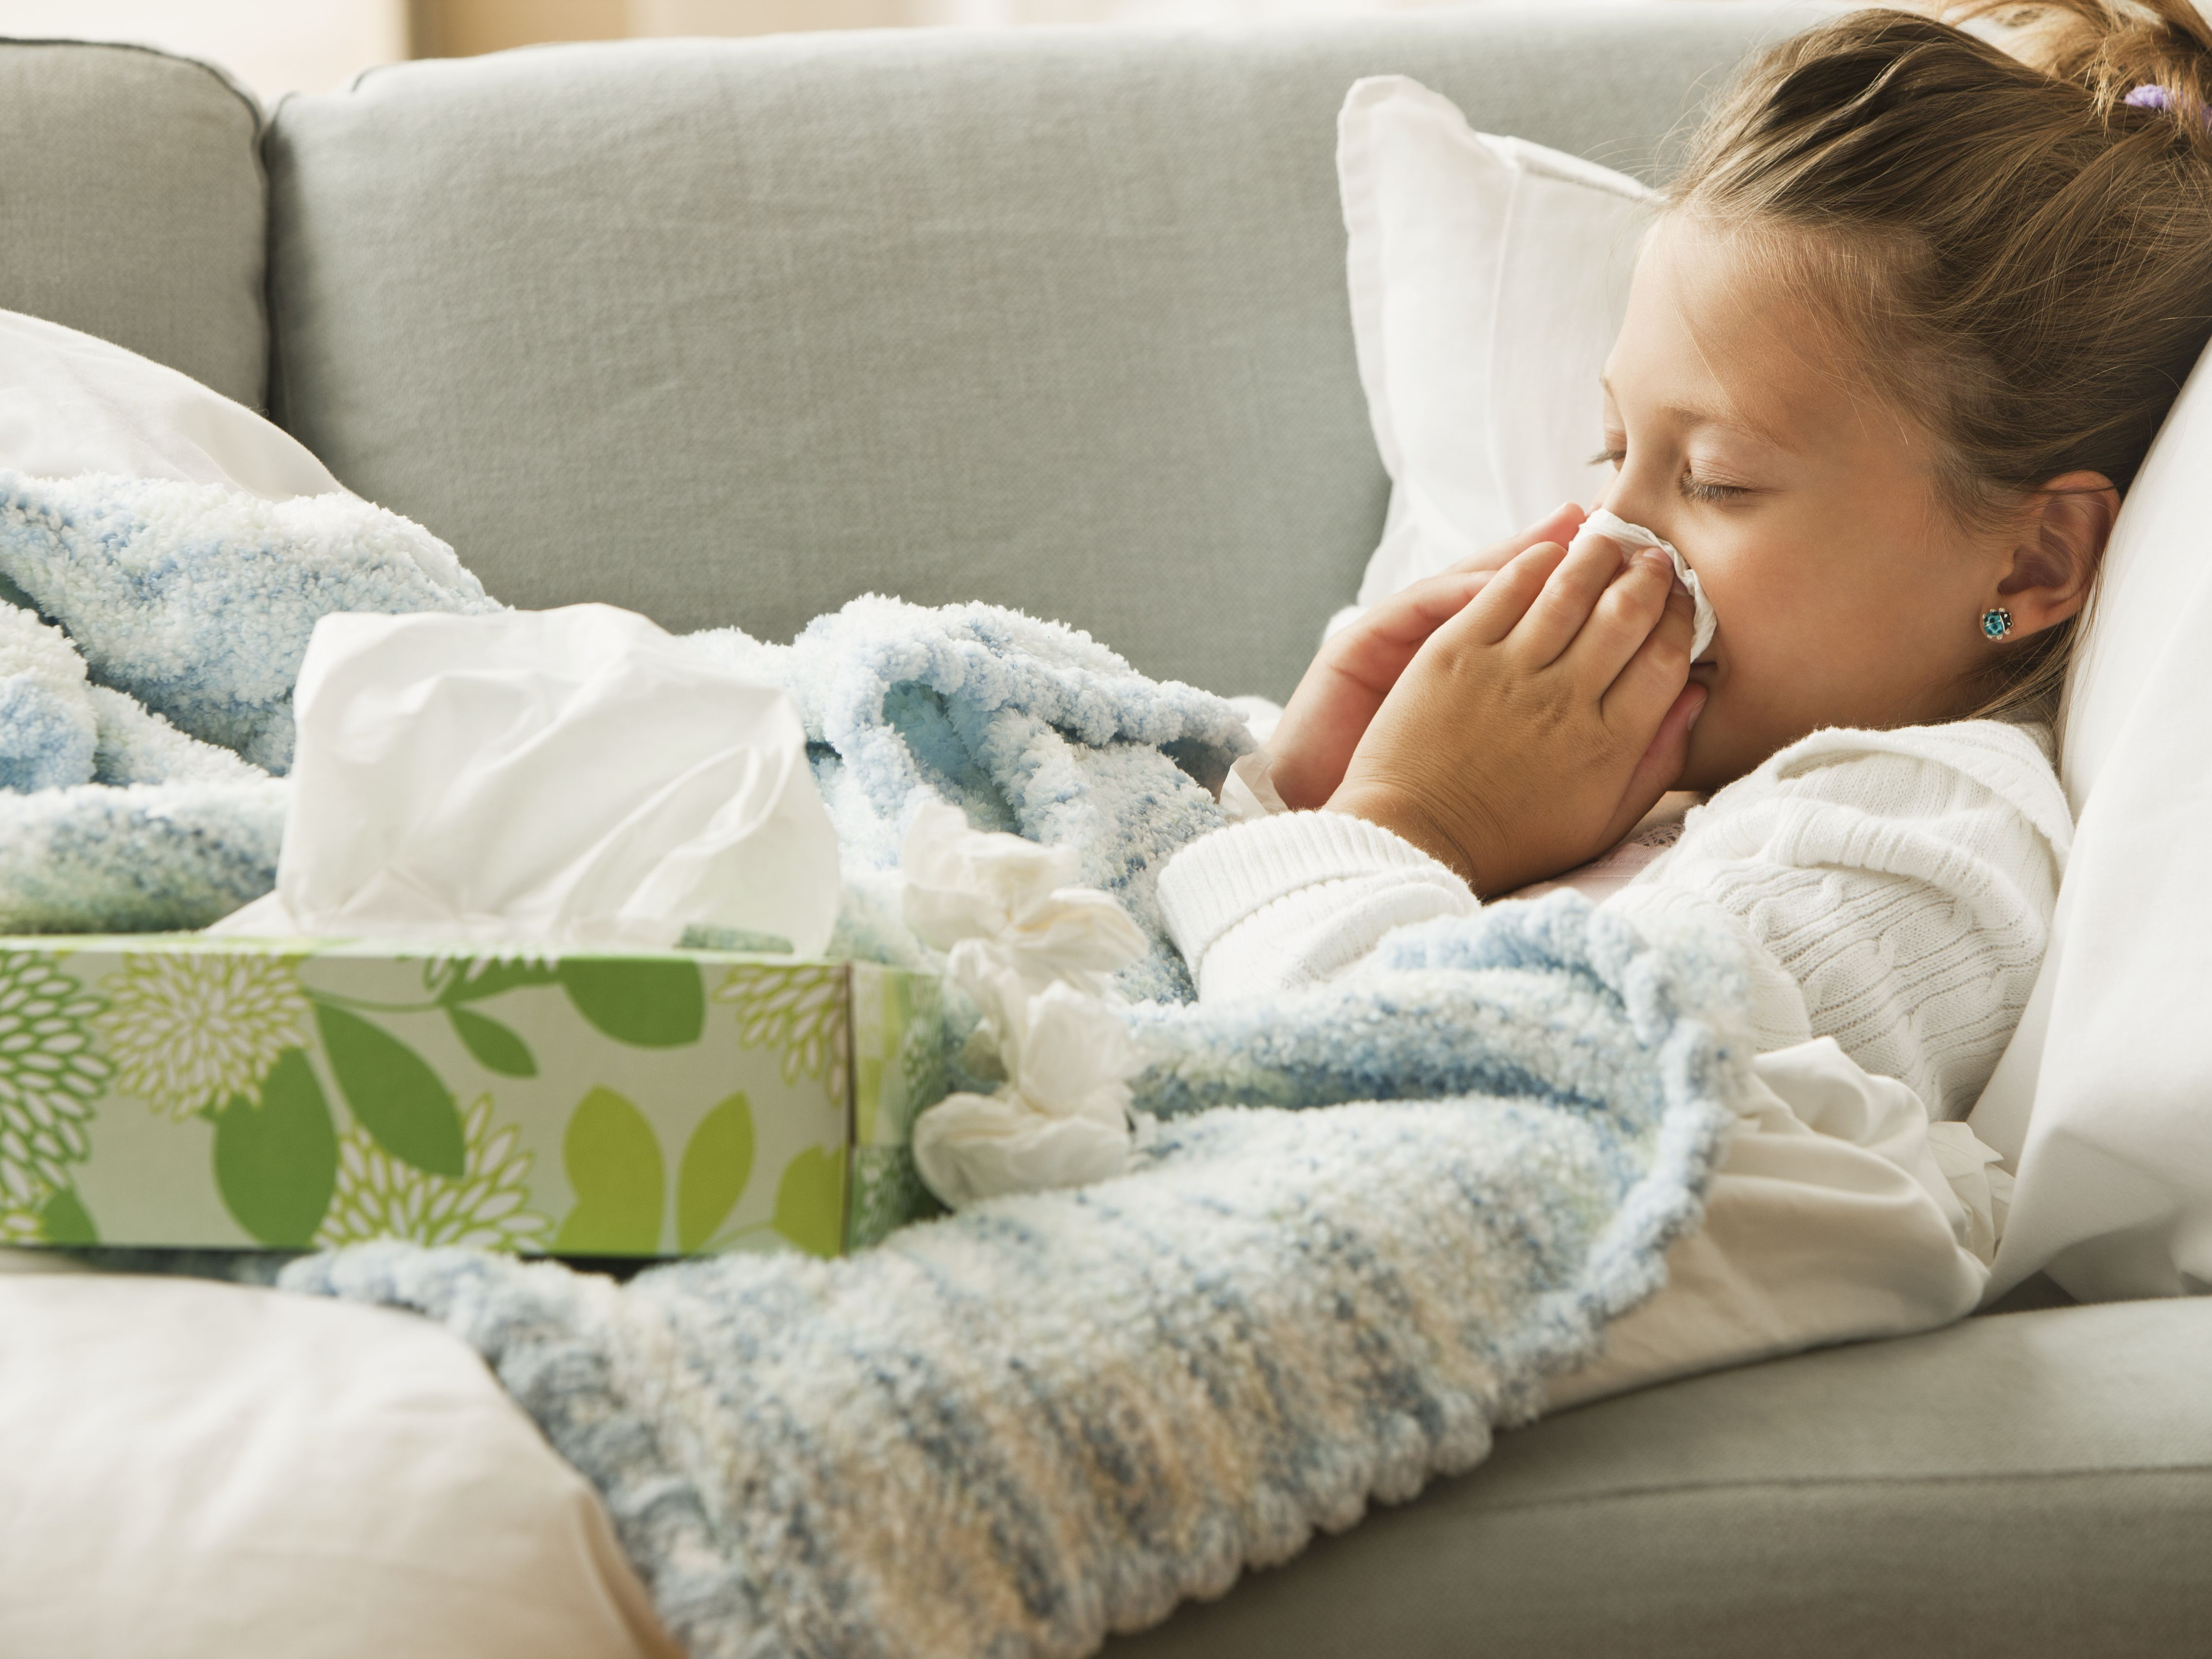 Chronic and Recurrent Symptoms of Childhood Illnesses